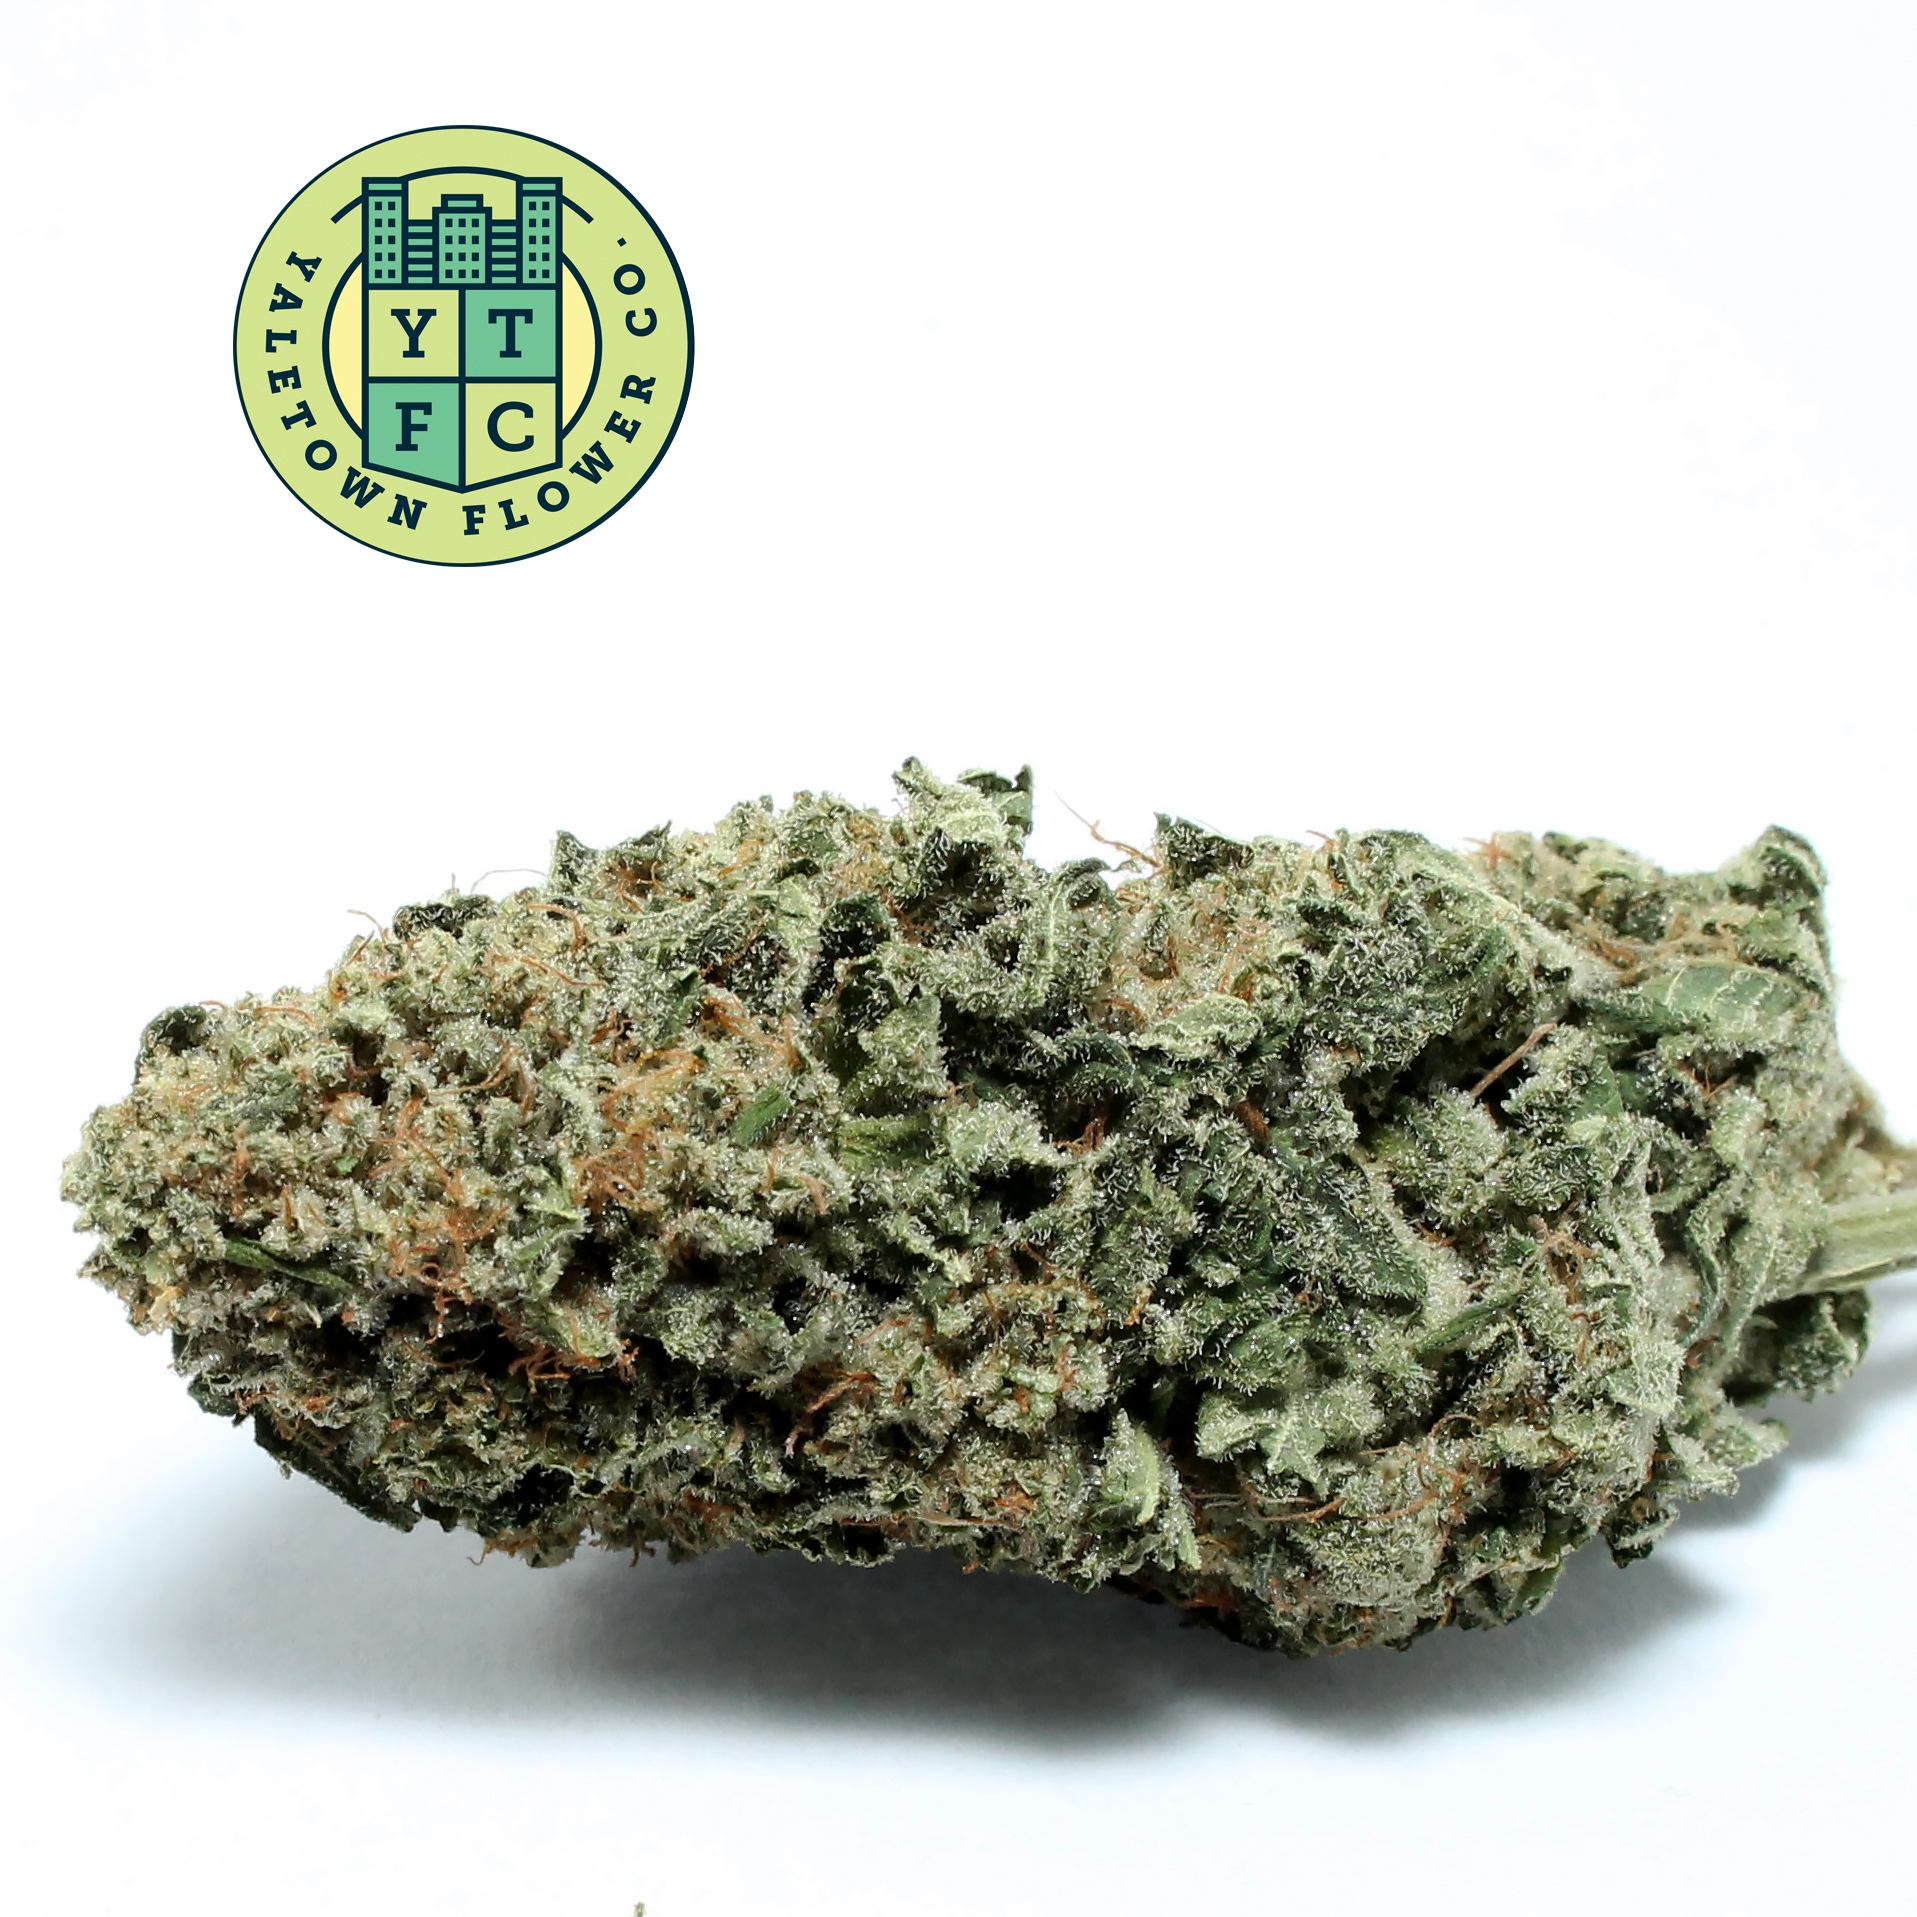 Yaletown Flower Co. brings Cann - greenz | ello